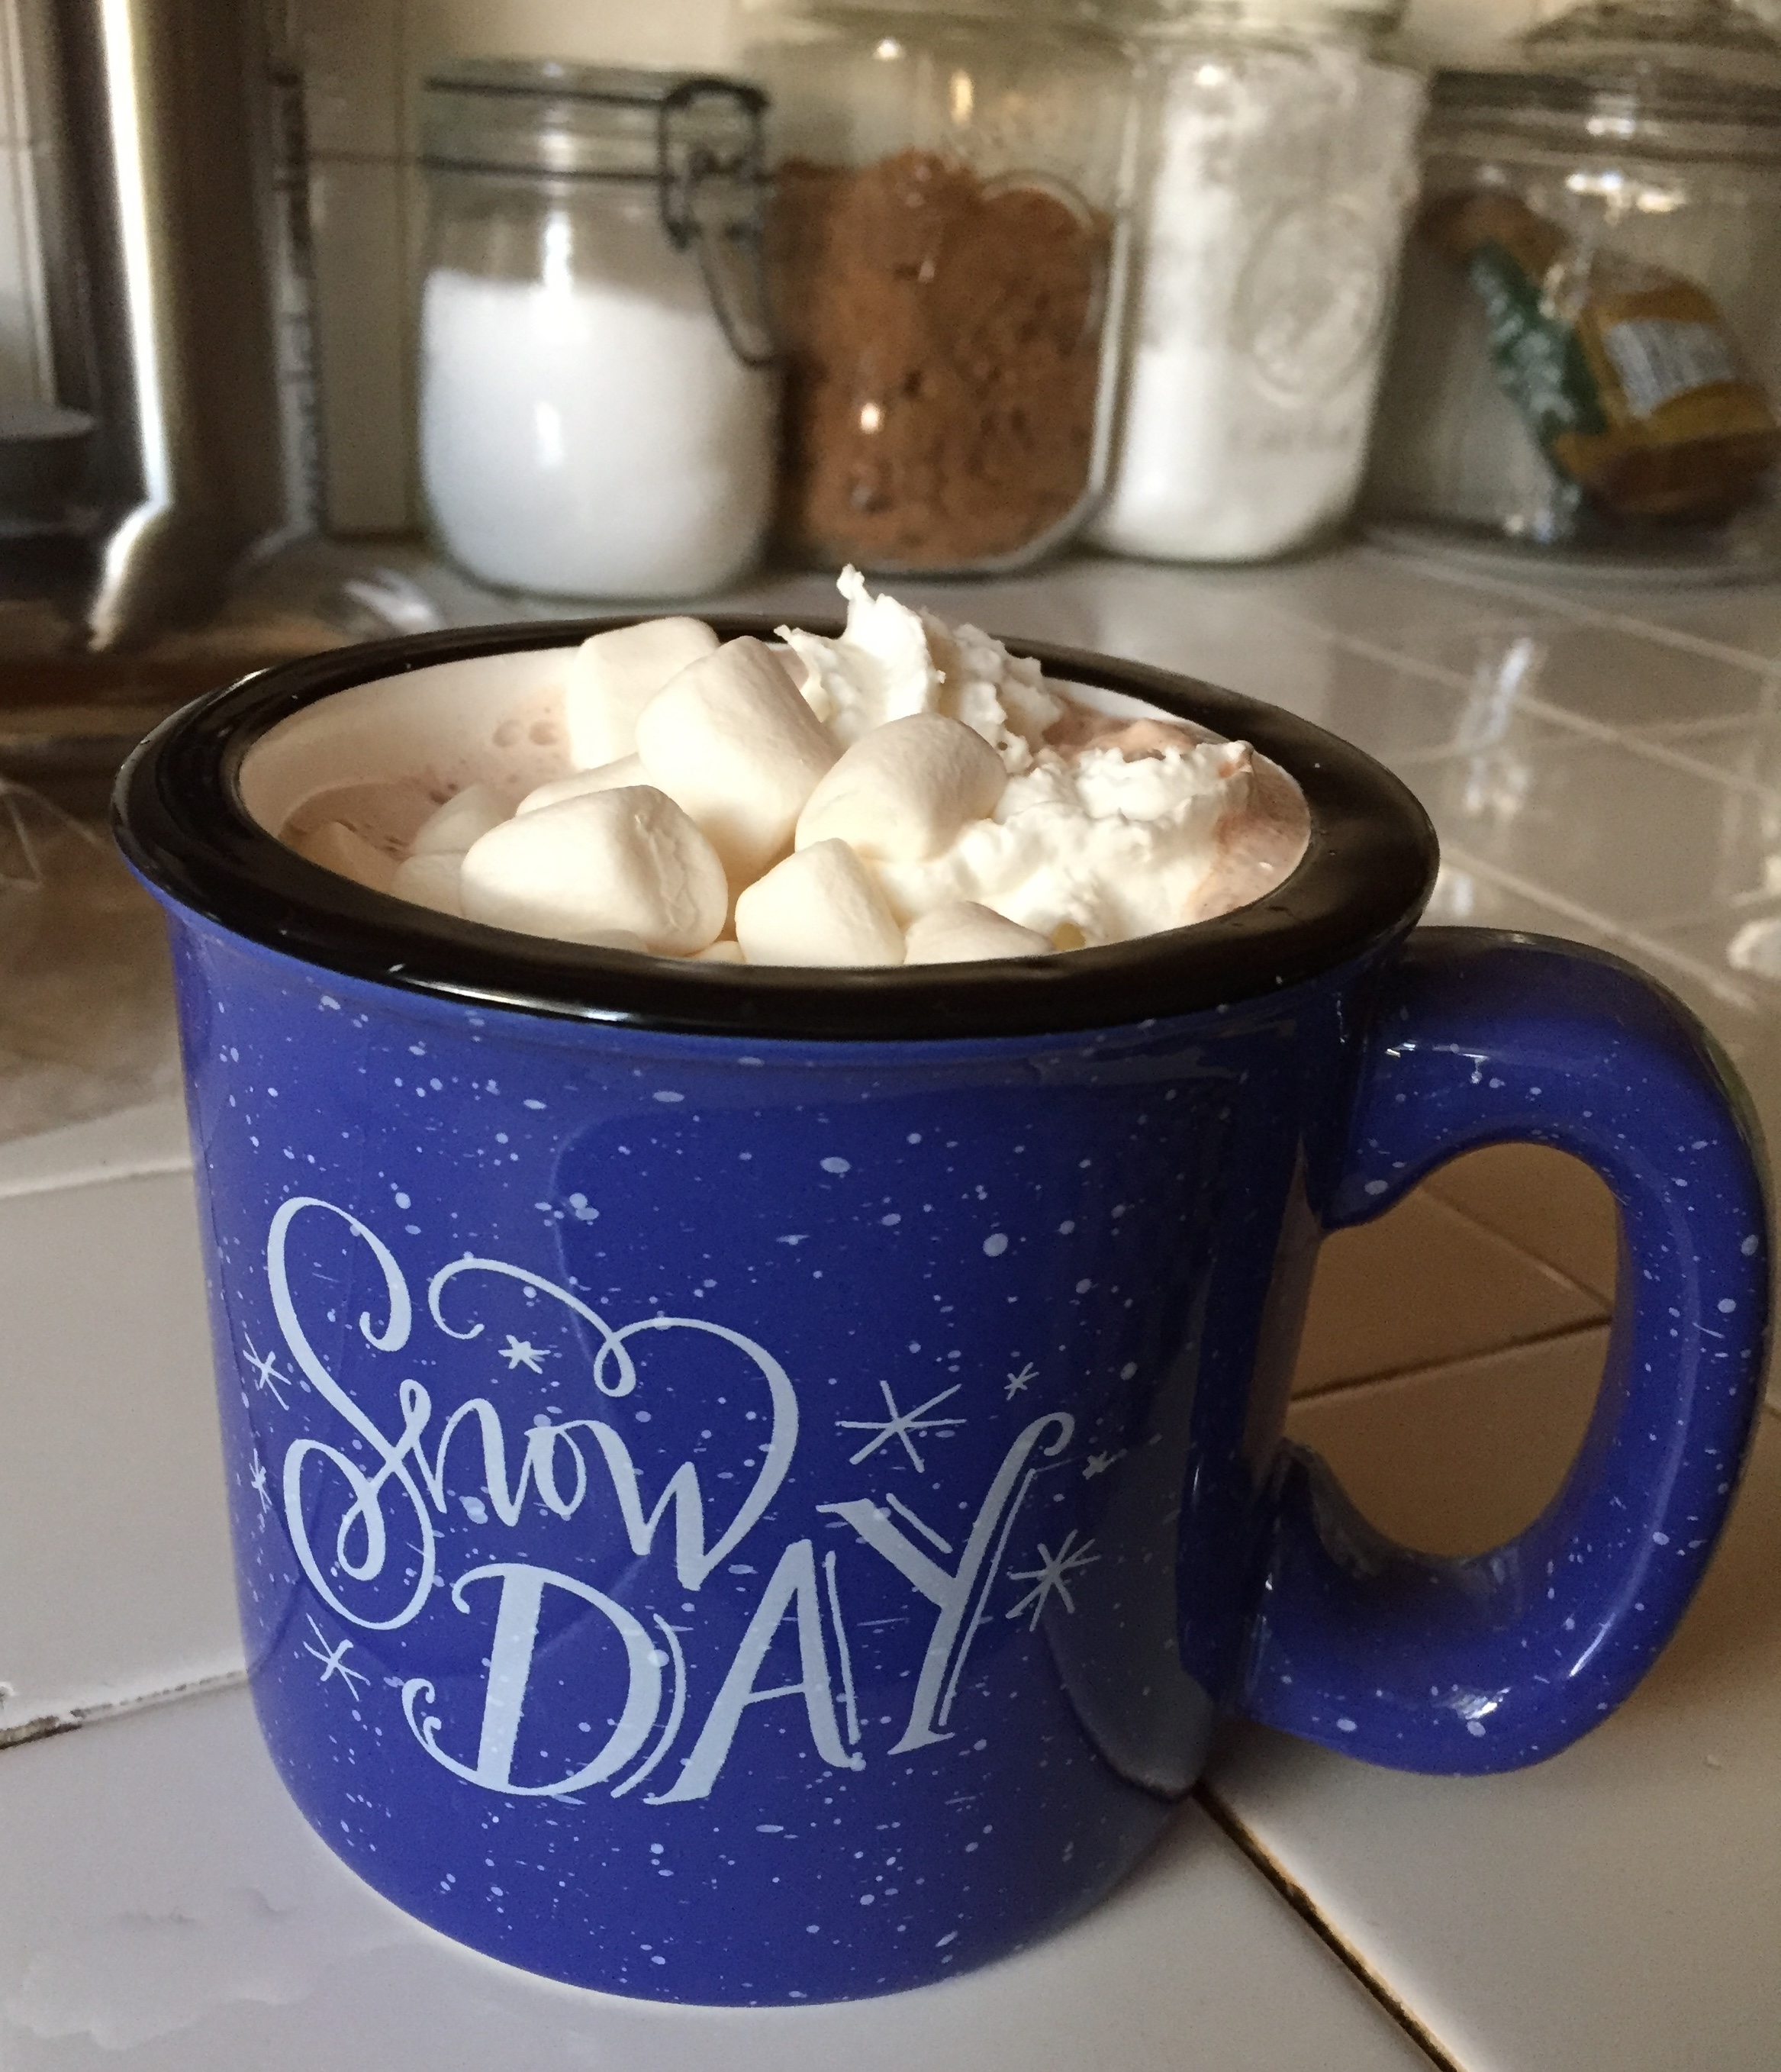 Snow Day Cocoa & Mug - Dec. 2017